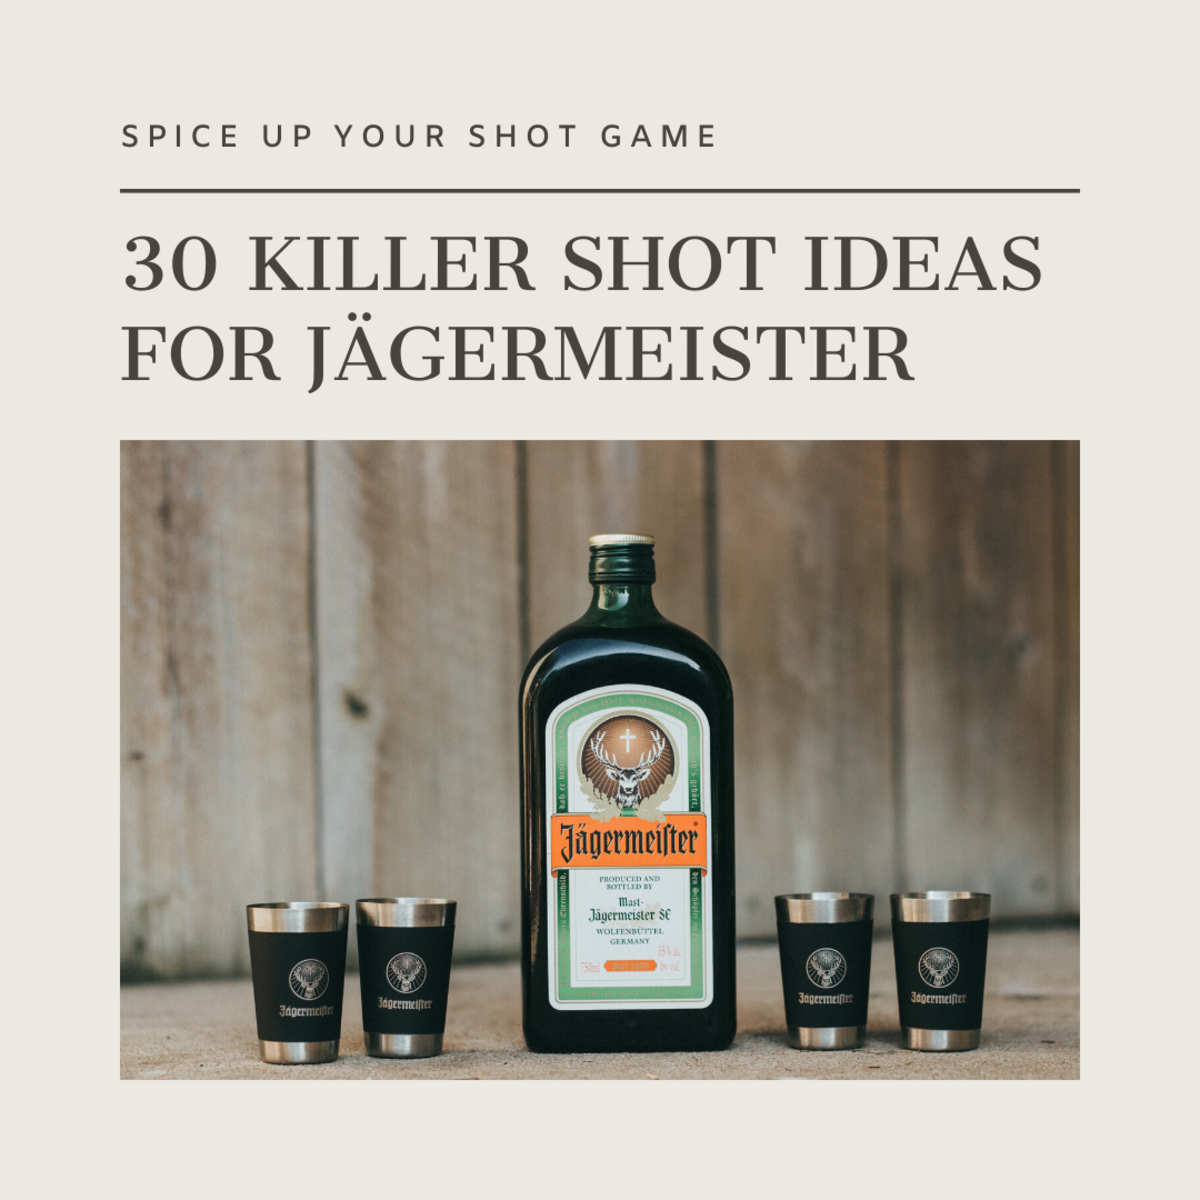 Here are 30 more damn good shot ideas that use Jägermeister.